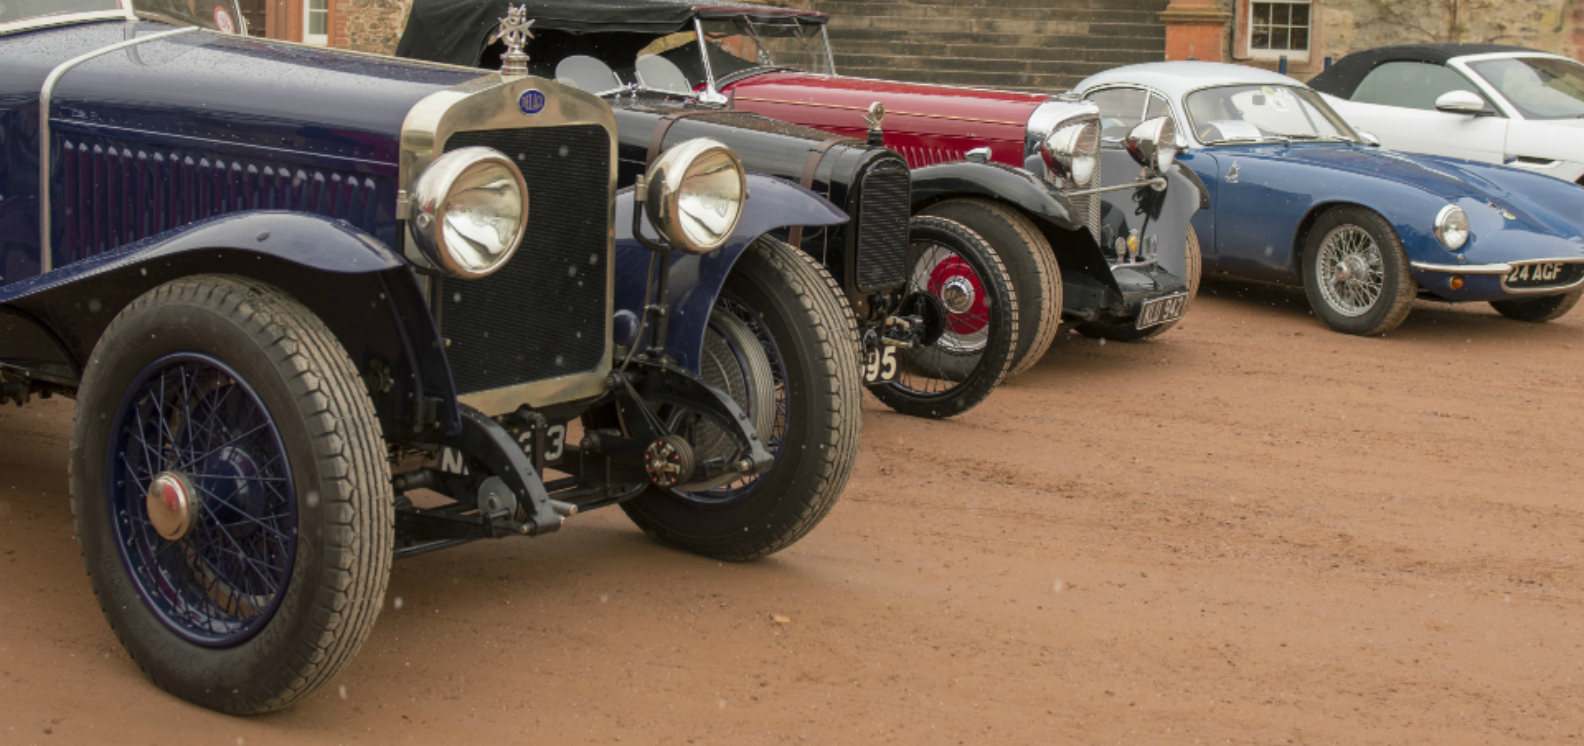 Vintage Cars and Wine at the BVAC Classic Car Show